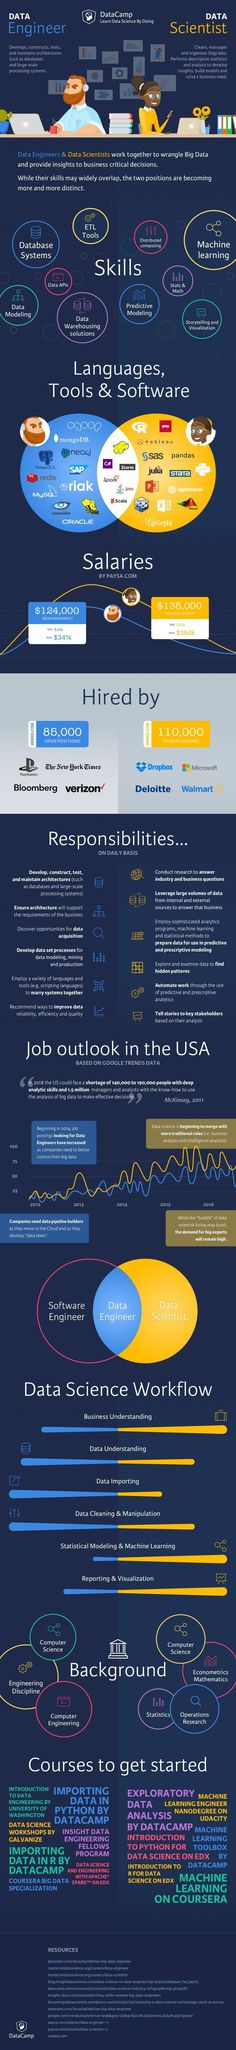 Check out our newest infographic comparing the roles of a Data Engineer and a Data Scientist #Infografía #Infographic